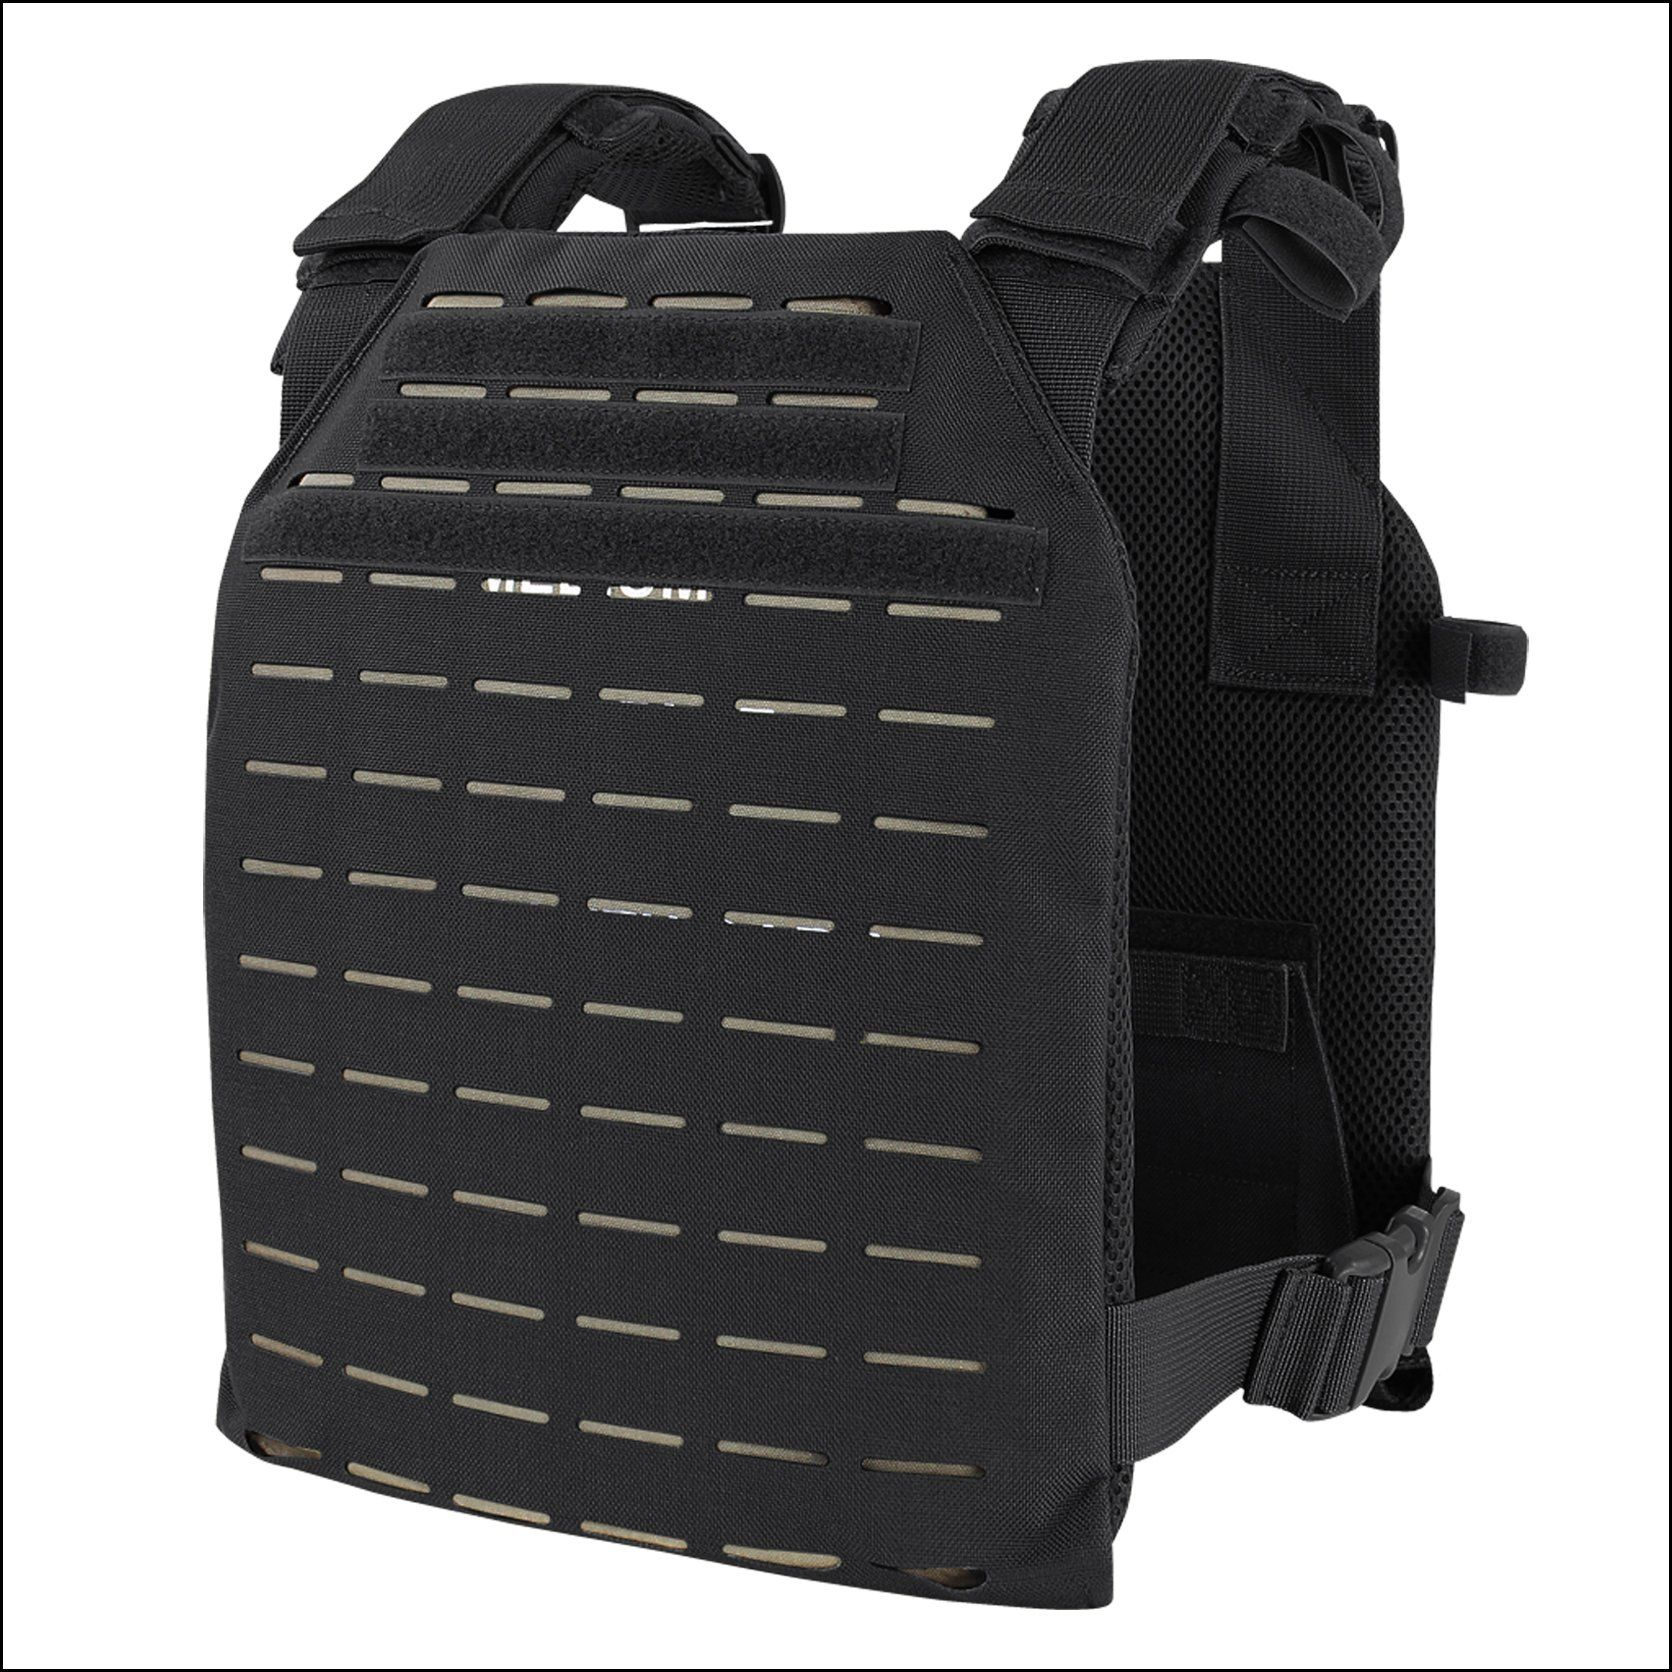 ced82c0ff286 LCS Sentry Plate Carrier | Tactical | Plate carrier, Molle system ...